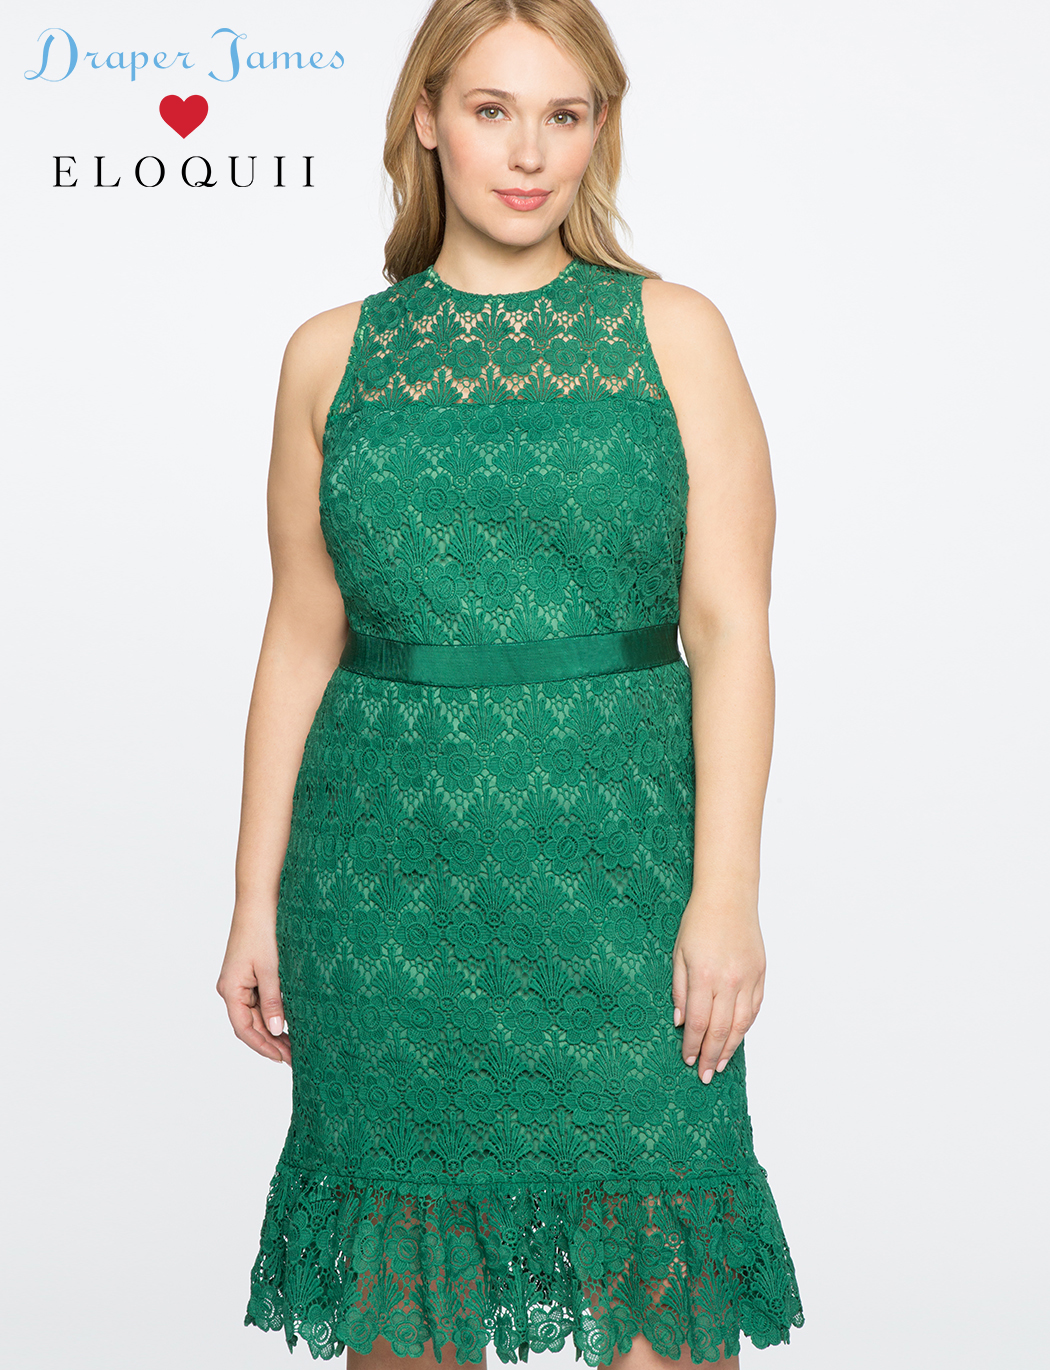 54ee1bf814 Draper James for ELOQUII Lace Dress with Sash | Women's Plus Size ...